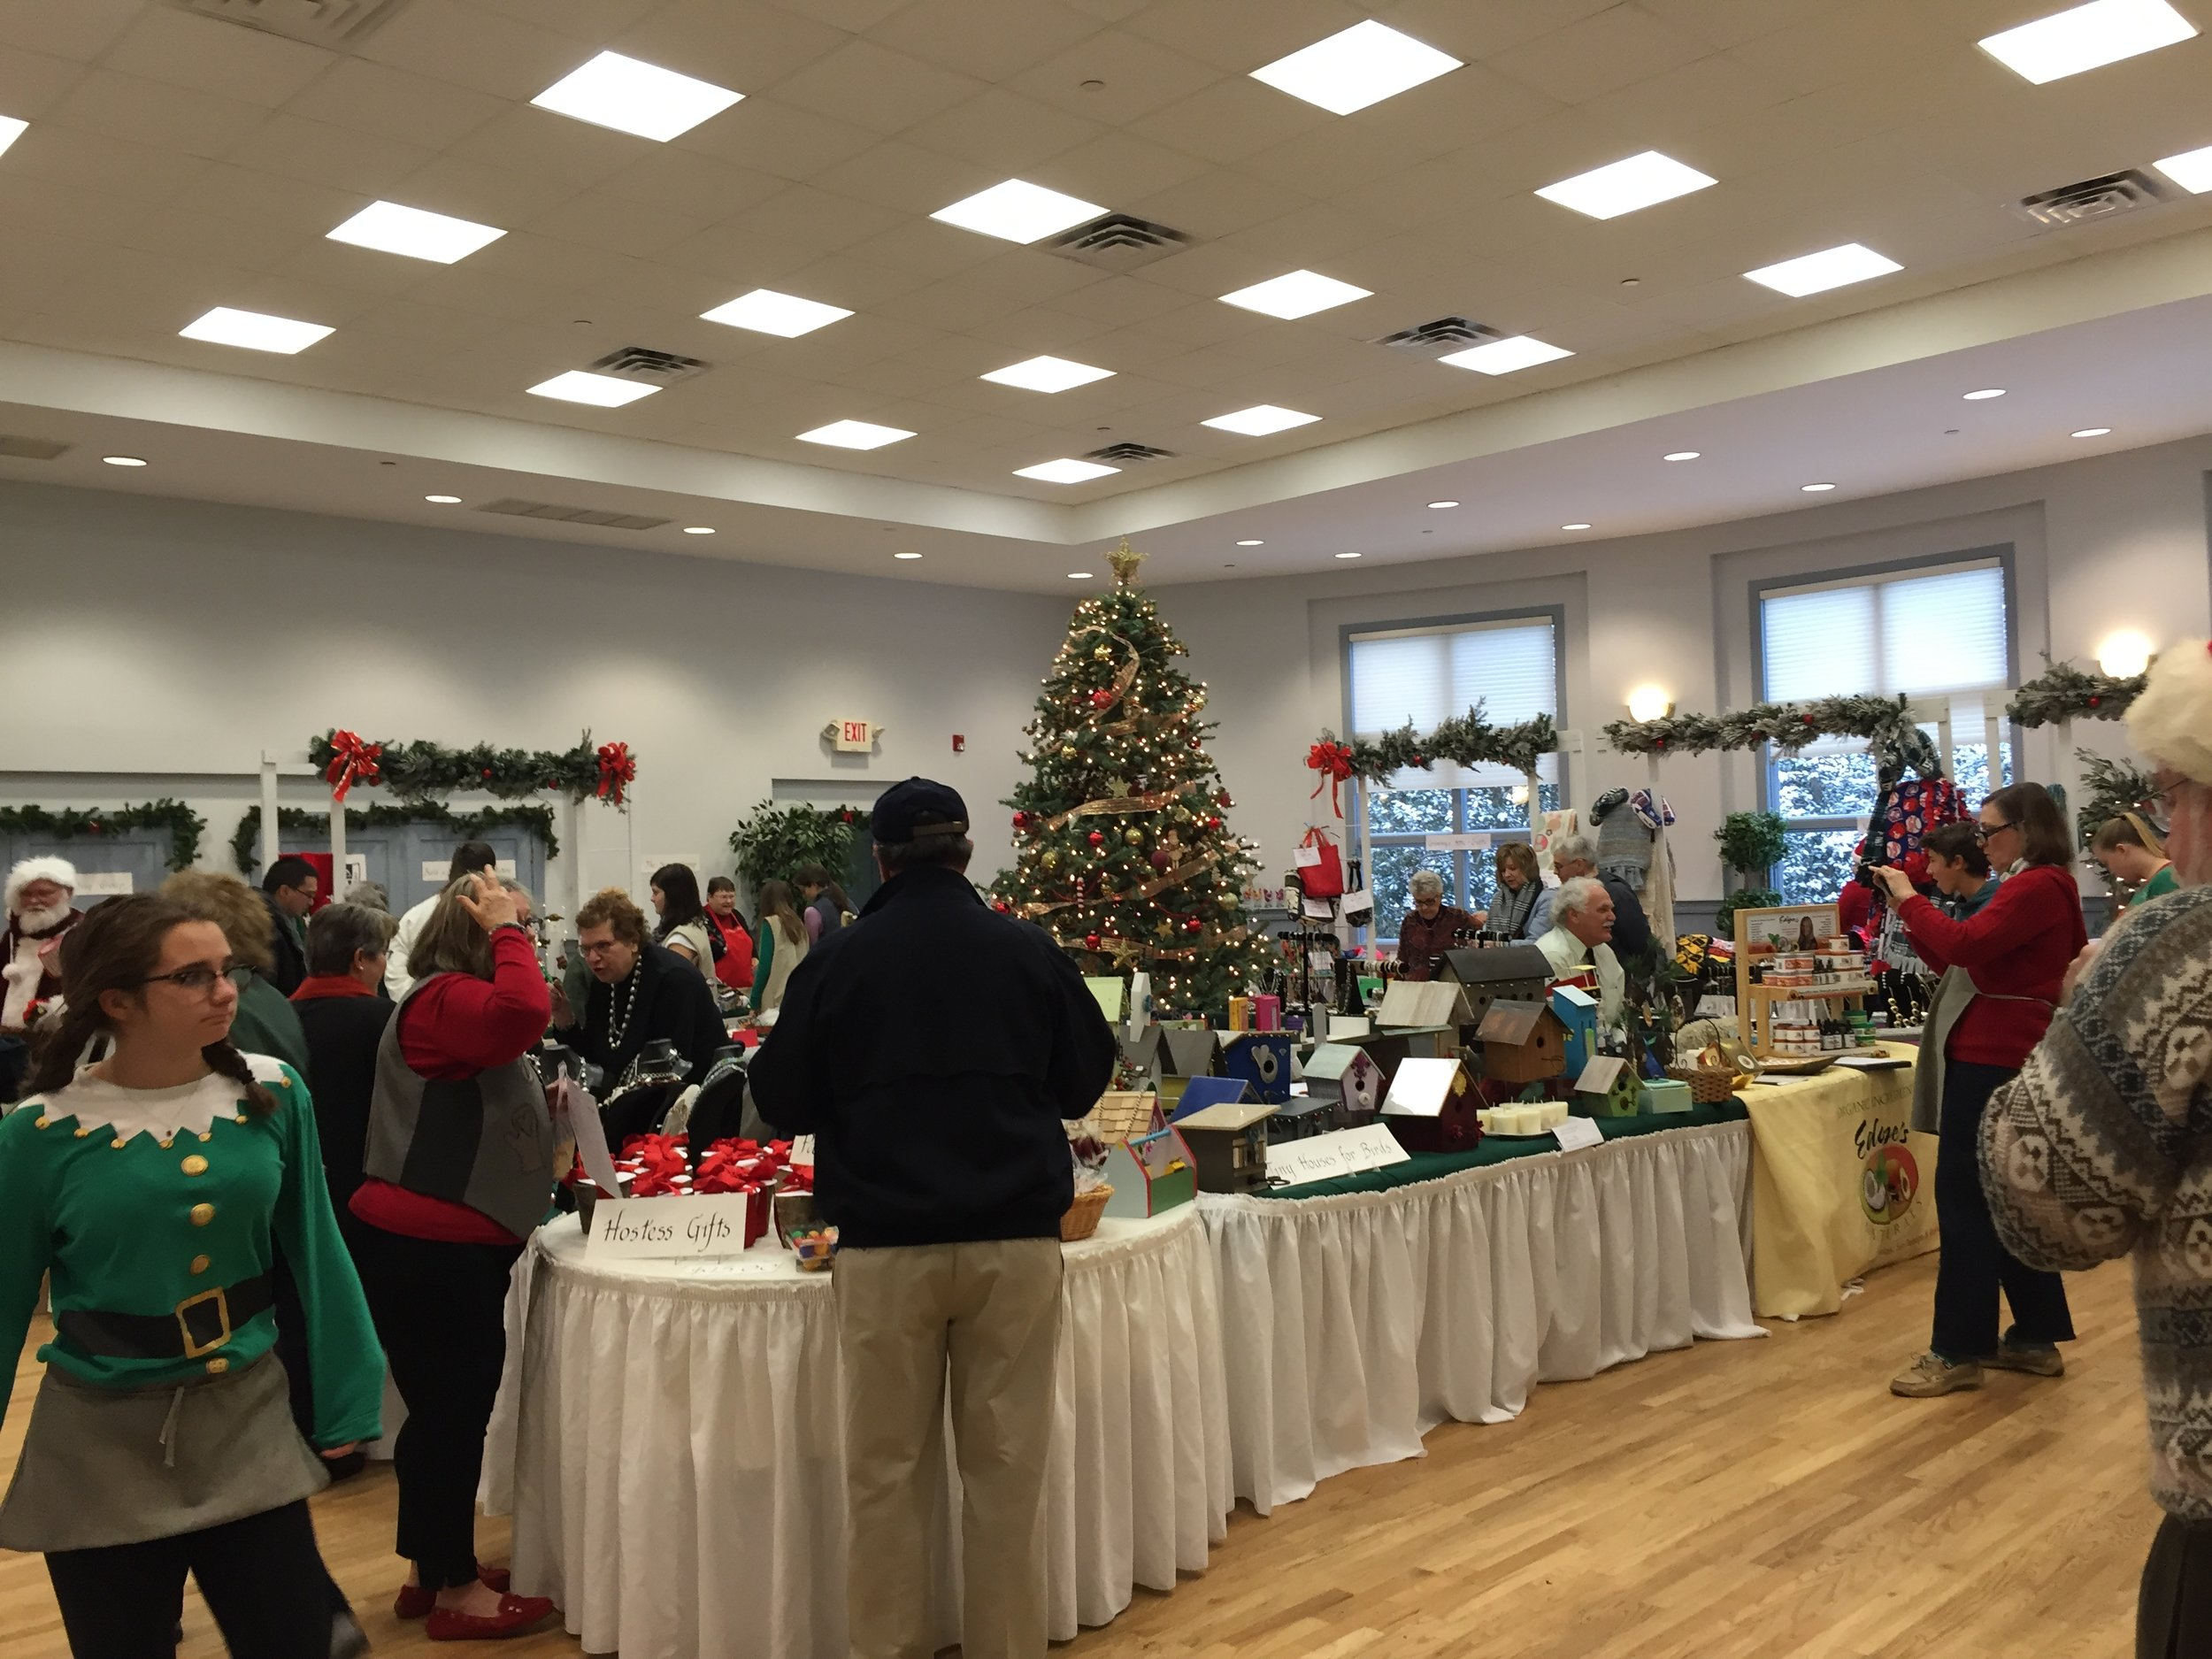 Annual Christmas Bazaar - Jewelry, Decorations, Gifts, Lunch